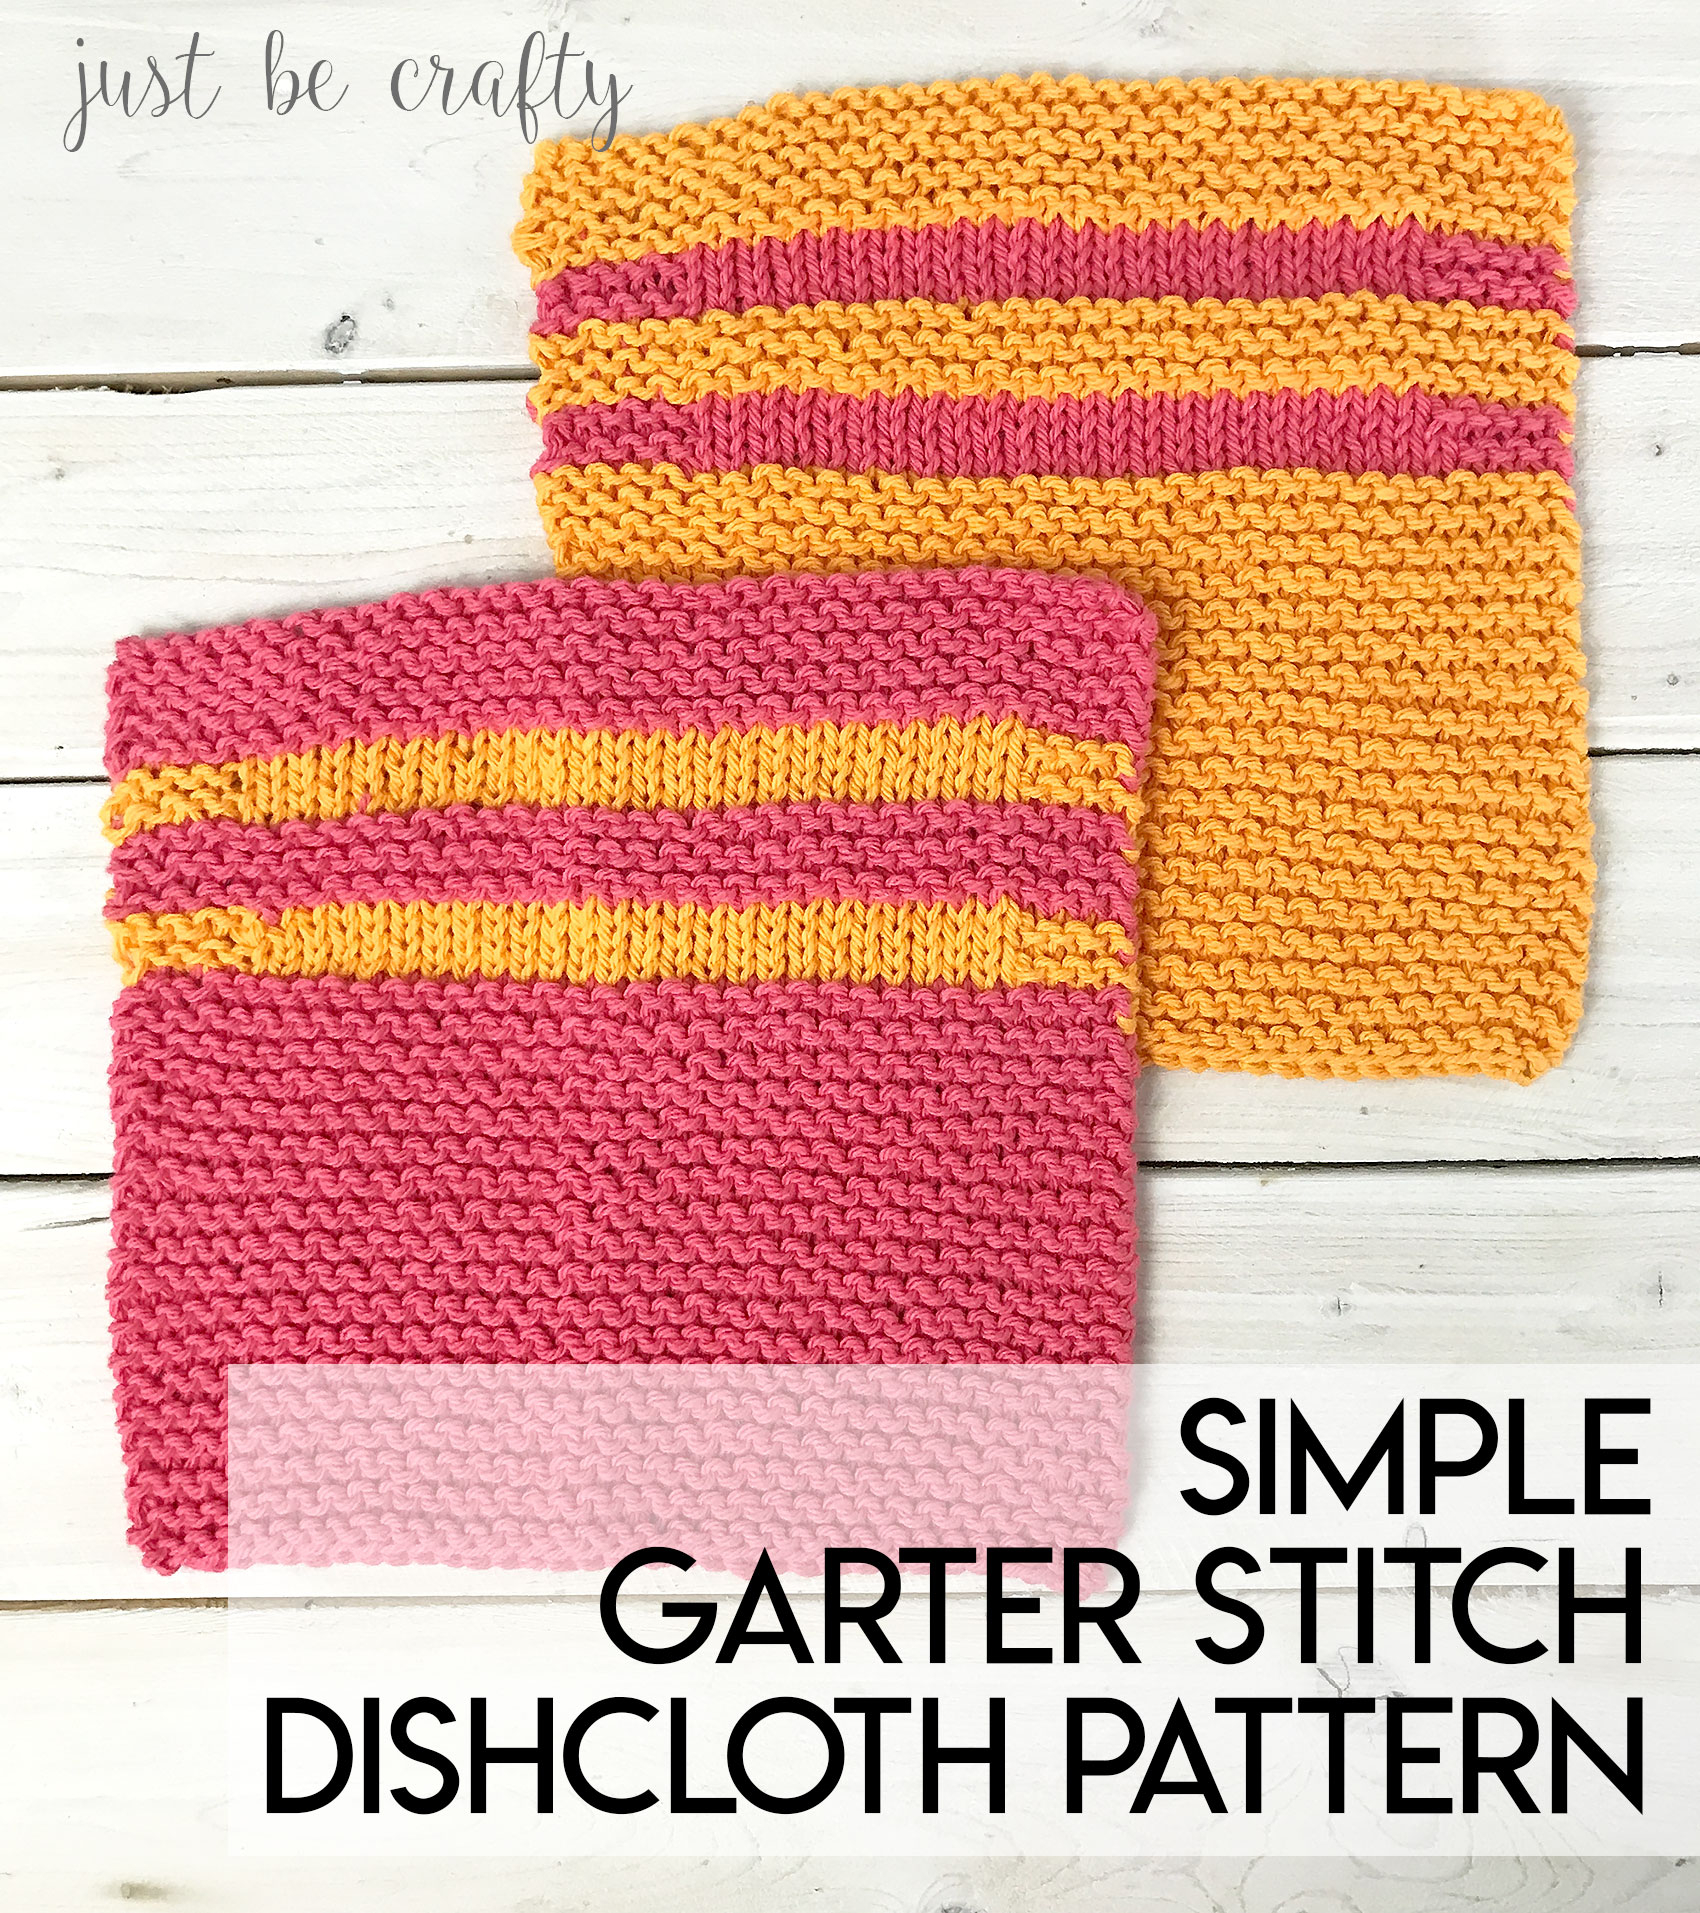 Free Knitted Cotton Dishcloth Patterns Simple Garter Stitch Dishcloth Pattern Free Pattern Just Be Crafty